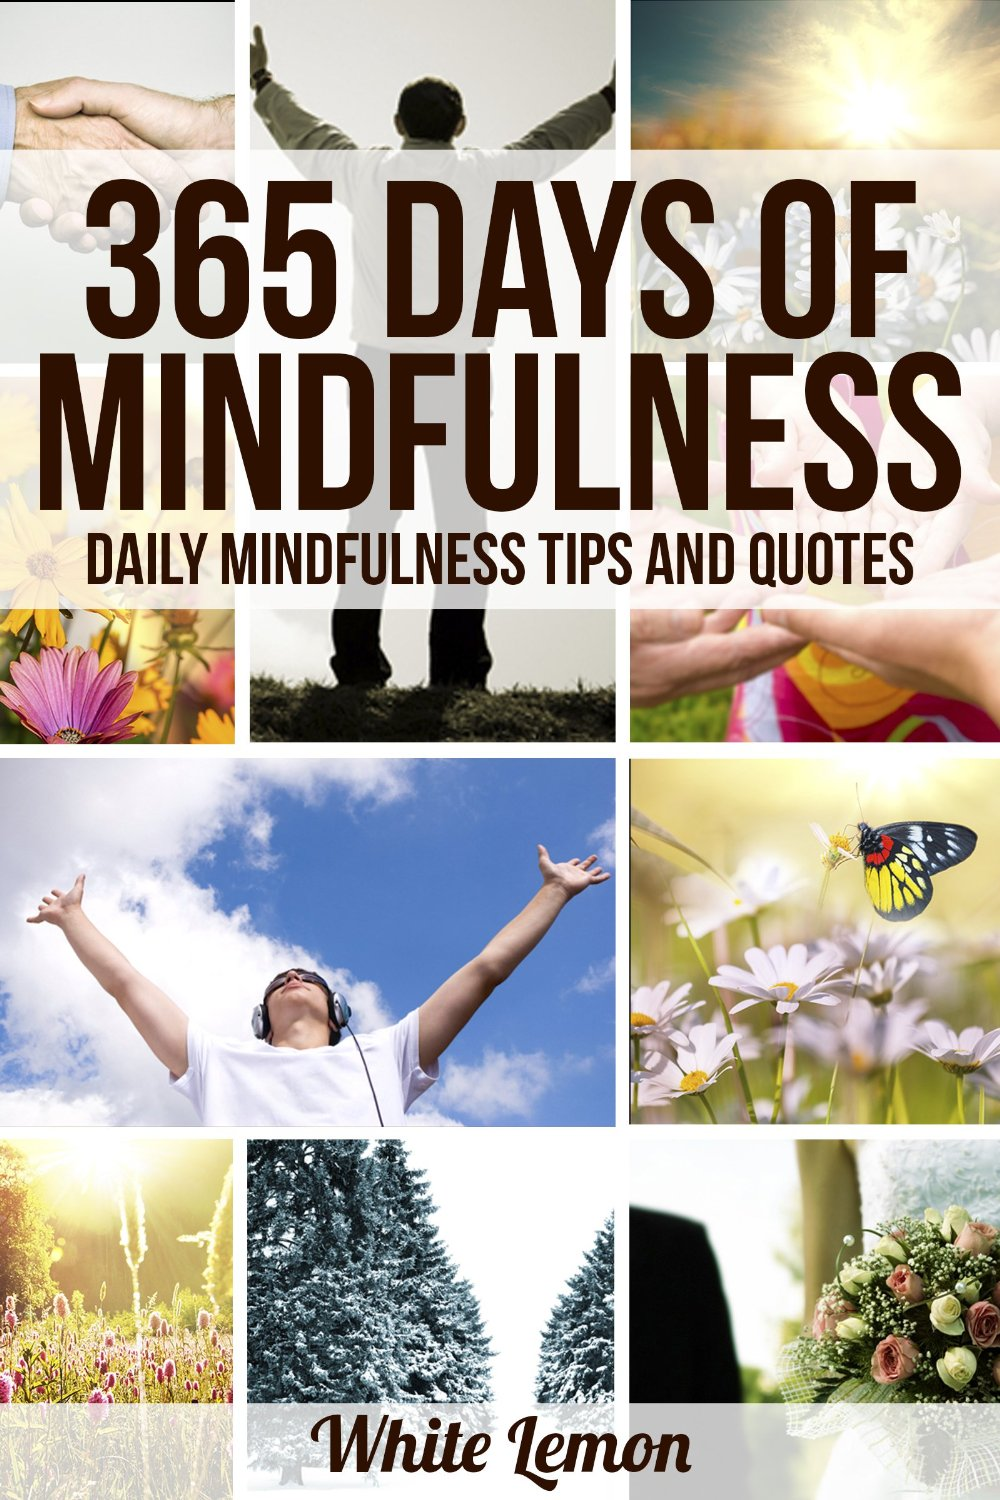 Mindfulness: 365 Days of Mindfulness: Daily Mindfulness Tips and Quotes (Over 365 Pictures) free download